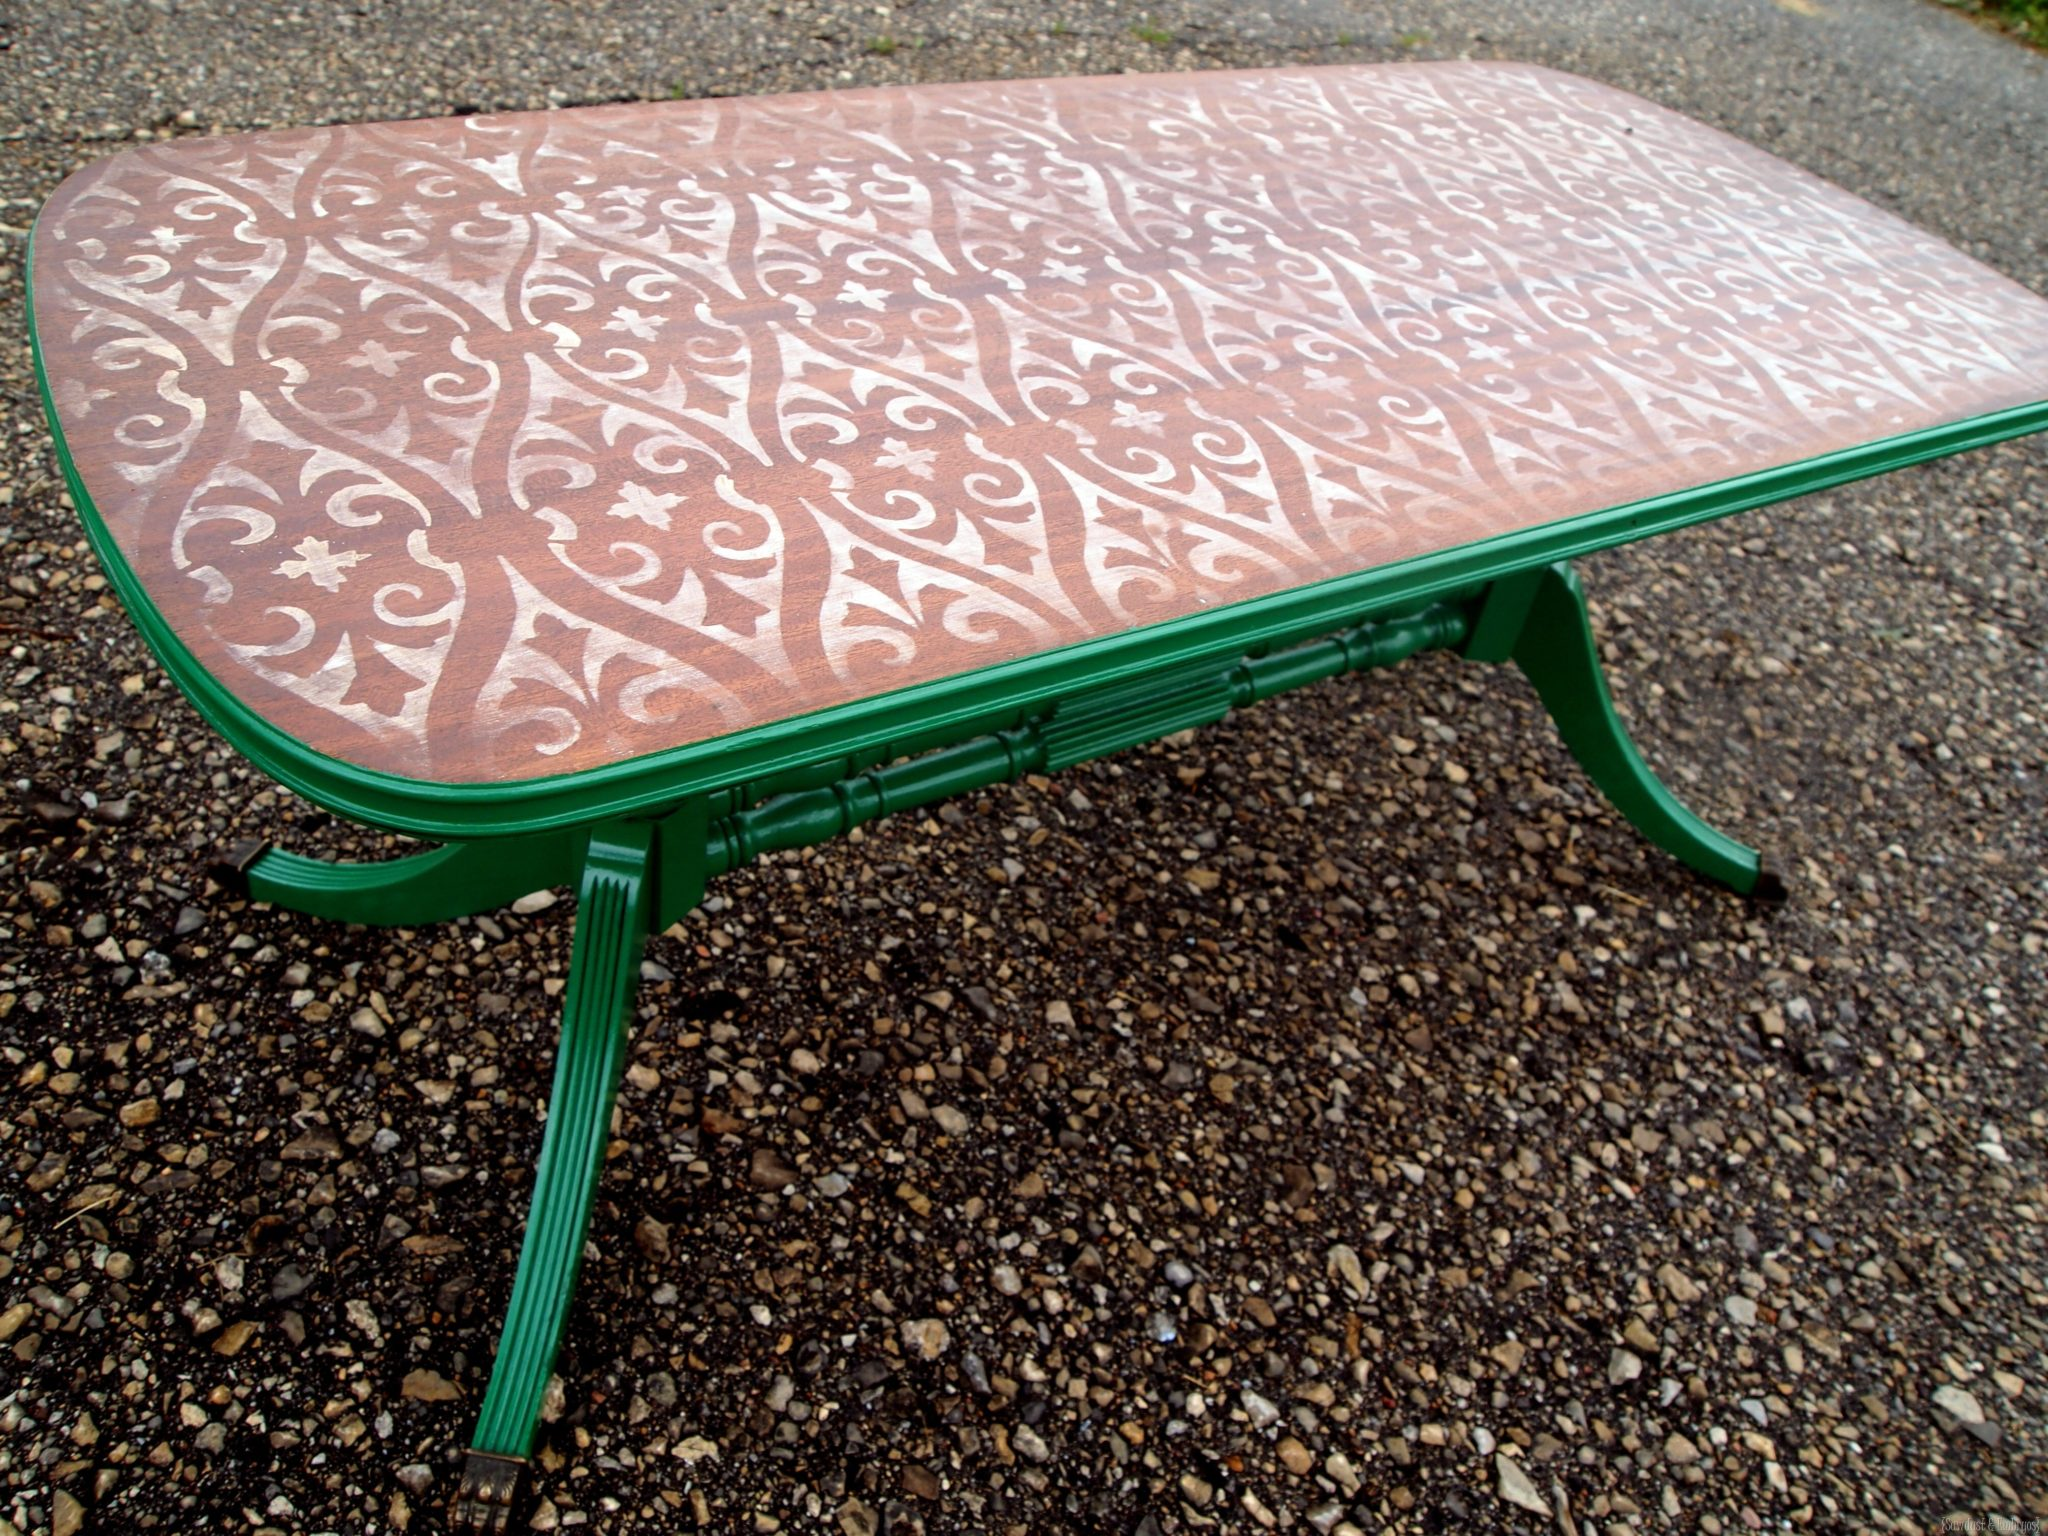 Distressed coffee table diy - Stencilled And Distressed Coffee Table By Sawdust Embryos